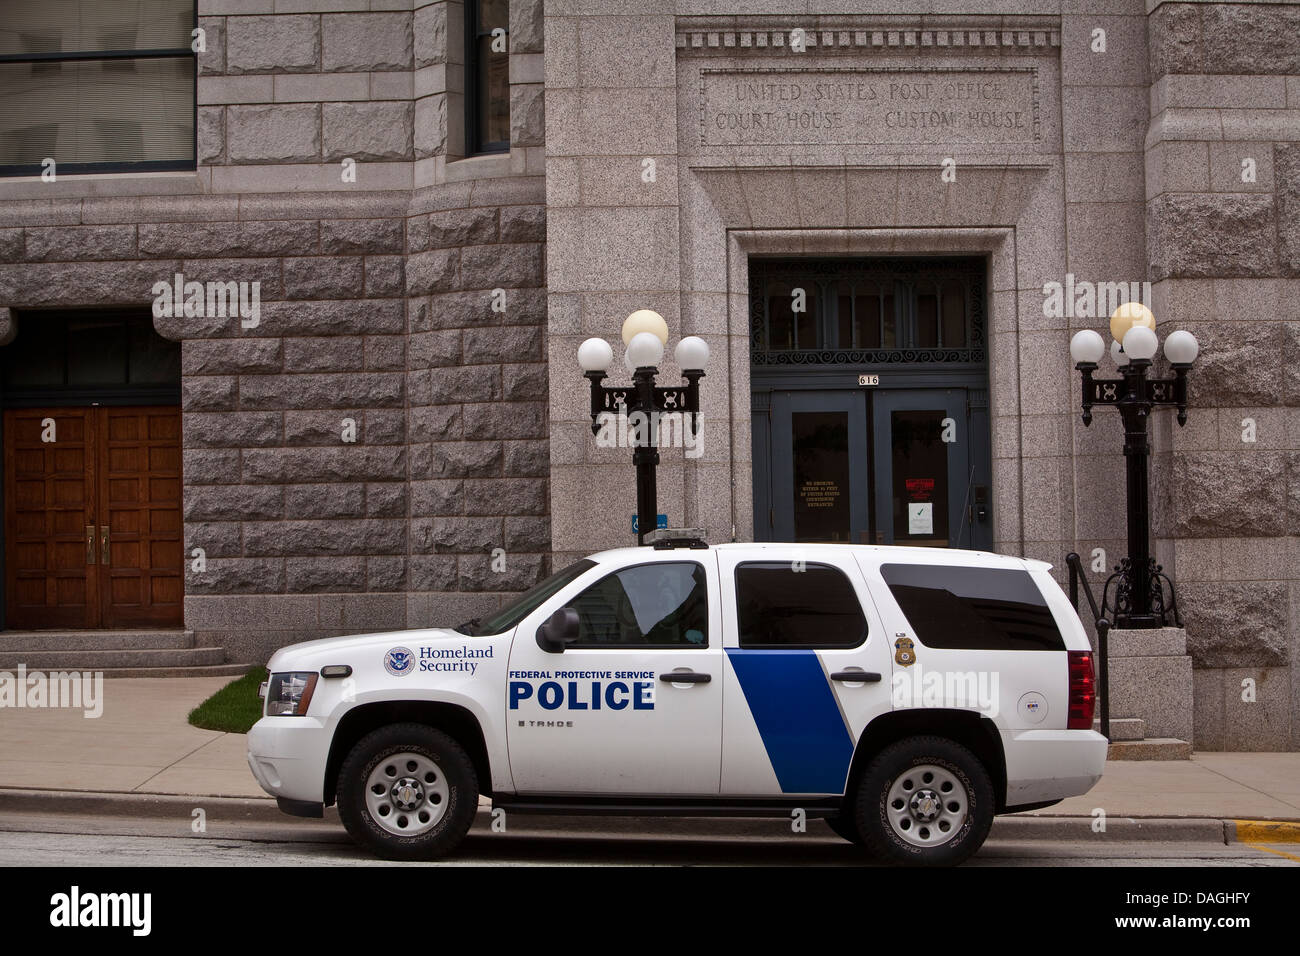 A Homeland Security police car of the Federal Protective Service is seen in Milwaukee - Stock Image